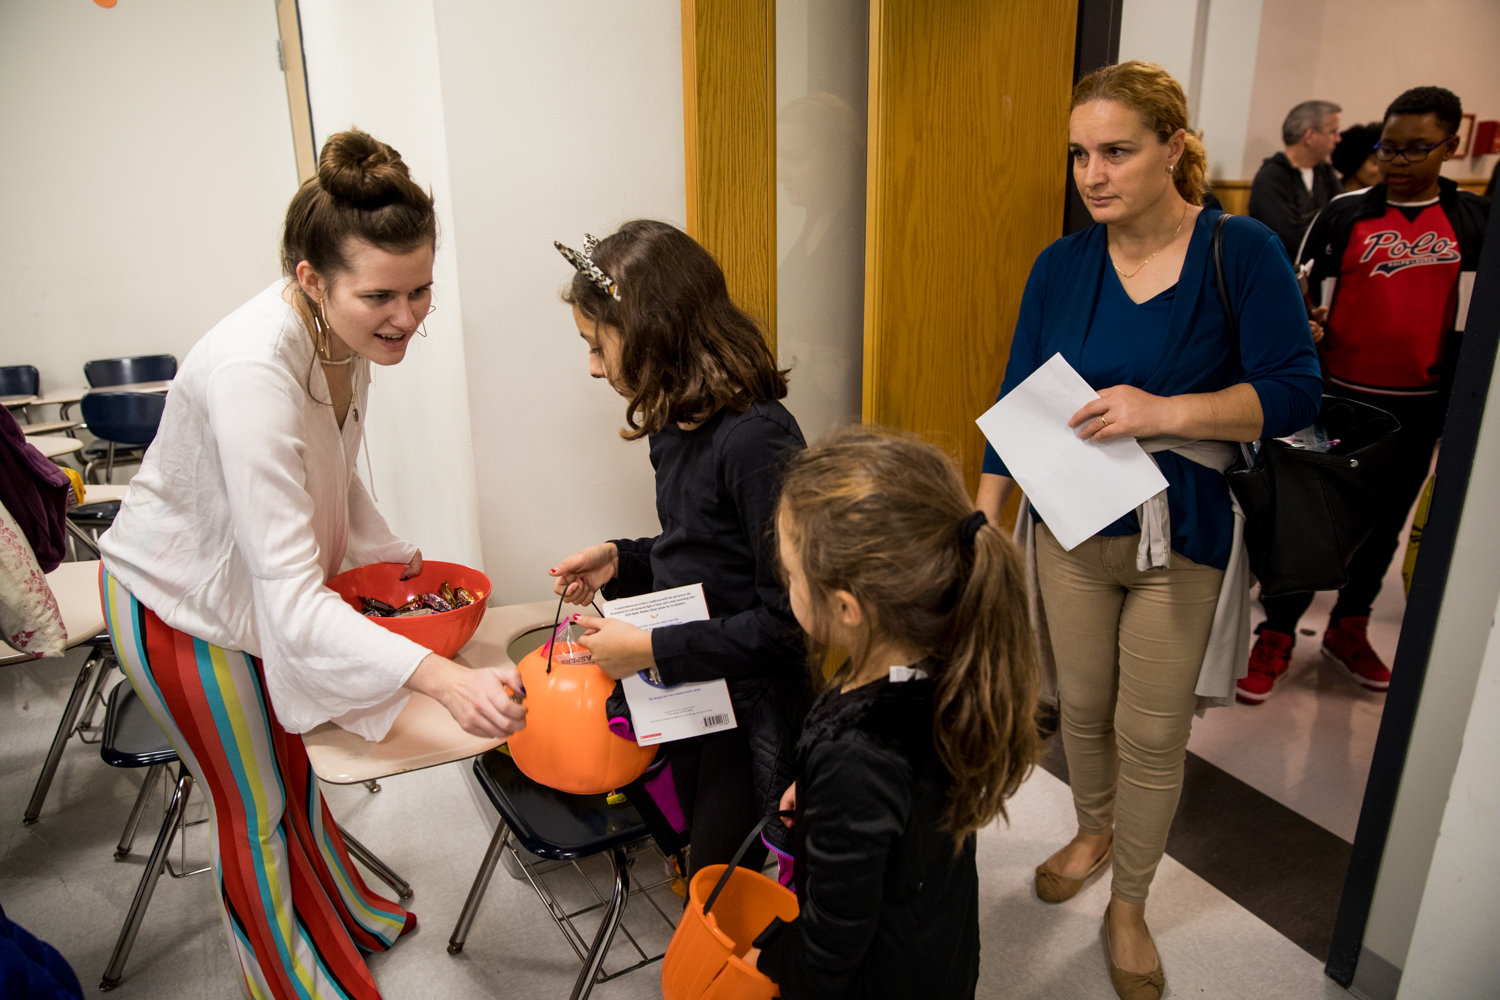 Manhattan College senior Mackenzie Kolman hands out candy to costumed children during the school's annual Safe Halloween event on Oct. 25.